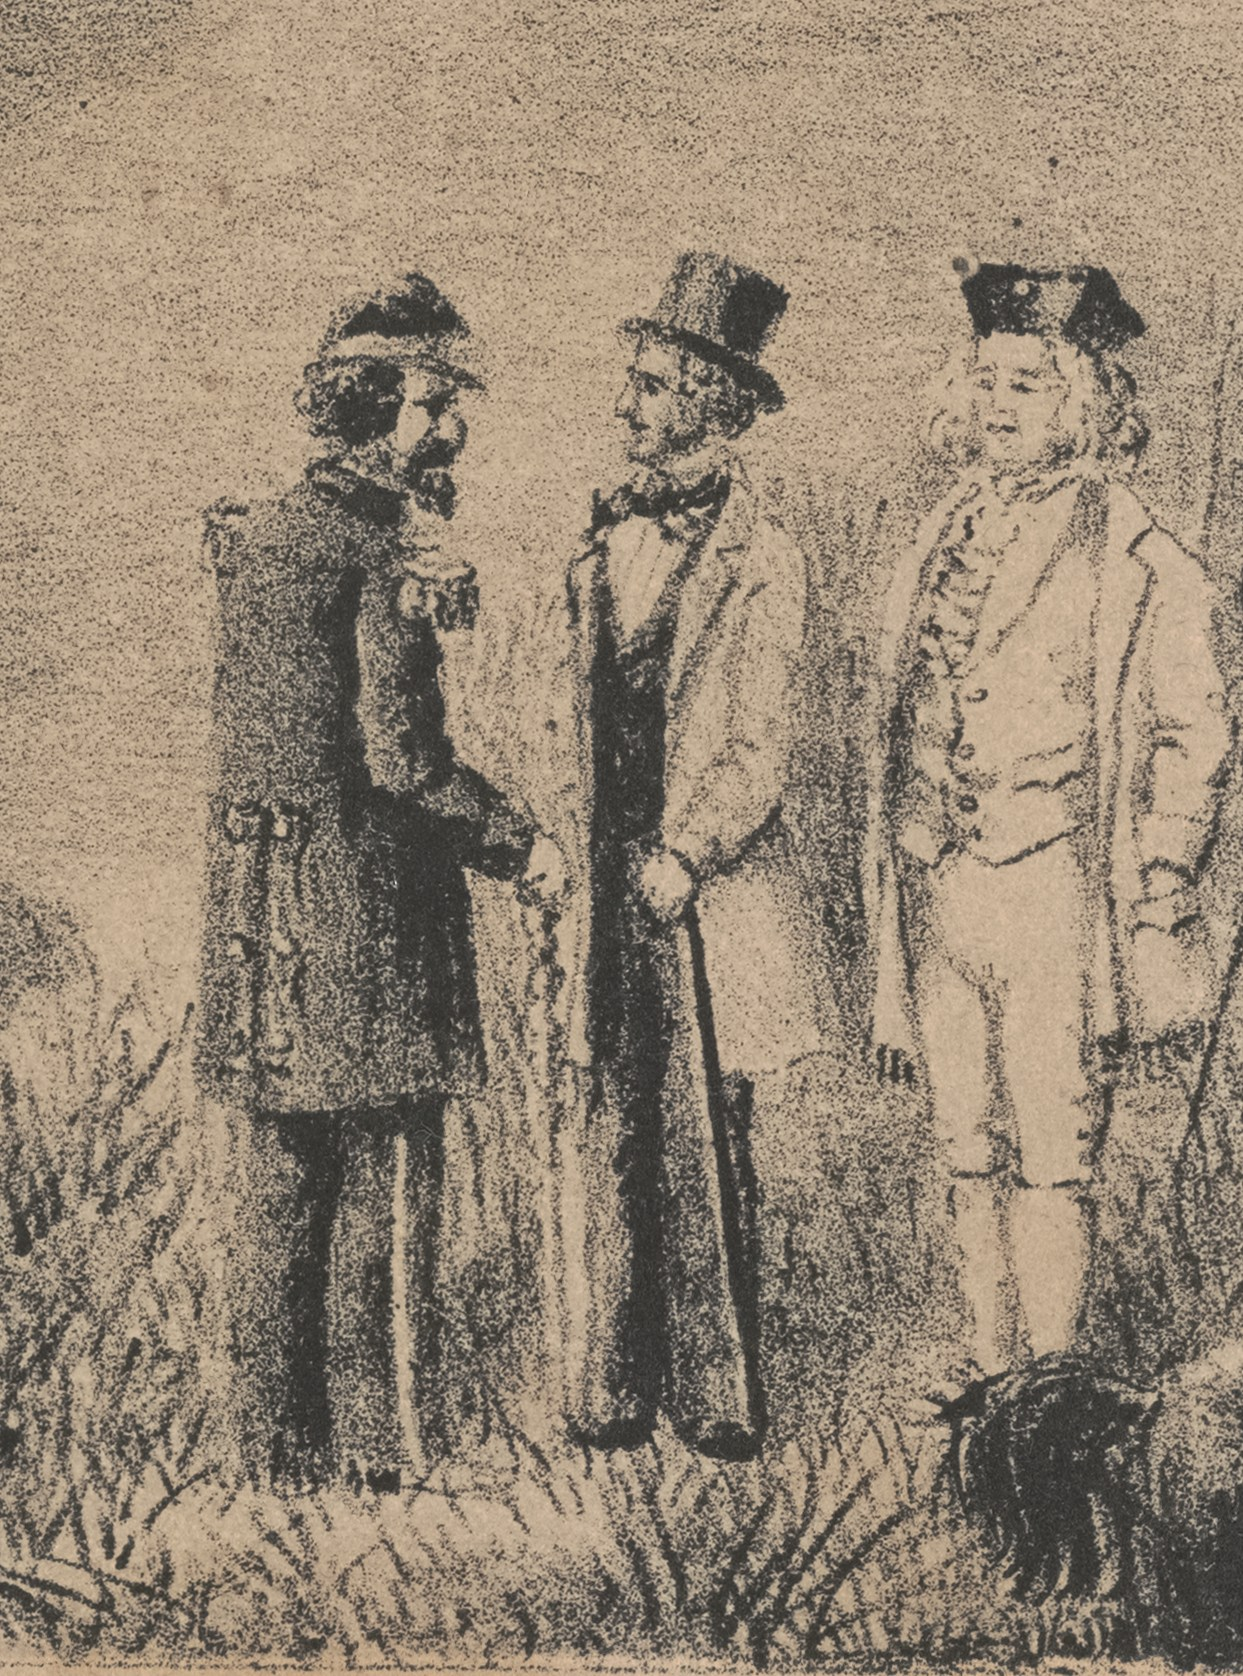 Detail from lithograph of  First Annual Encampment of the Second Bridge C.M.; Brigadier General Ellis, Commanding; Reviewed by His Excellency Gov. Stanford; Brigade Drill and Shamfight Oct. 14th 1863  (1863), by T. Grob. Stanford University Archives. Click this image to view the full painting. Emperor Norton is seen at the bottom speaking with two others, one of whom appears to be Frederick Coombs a.k.a. George Washington II (d. 1874).